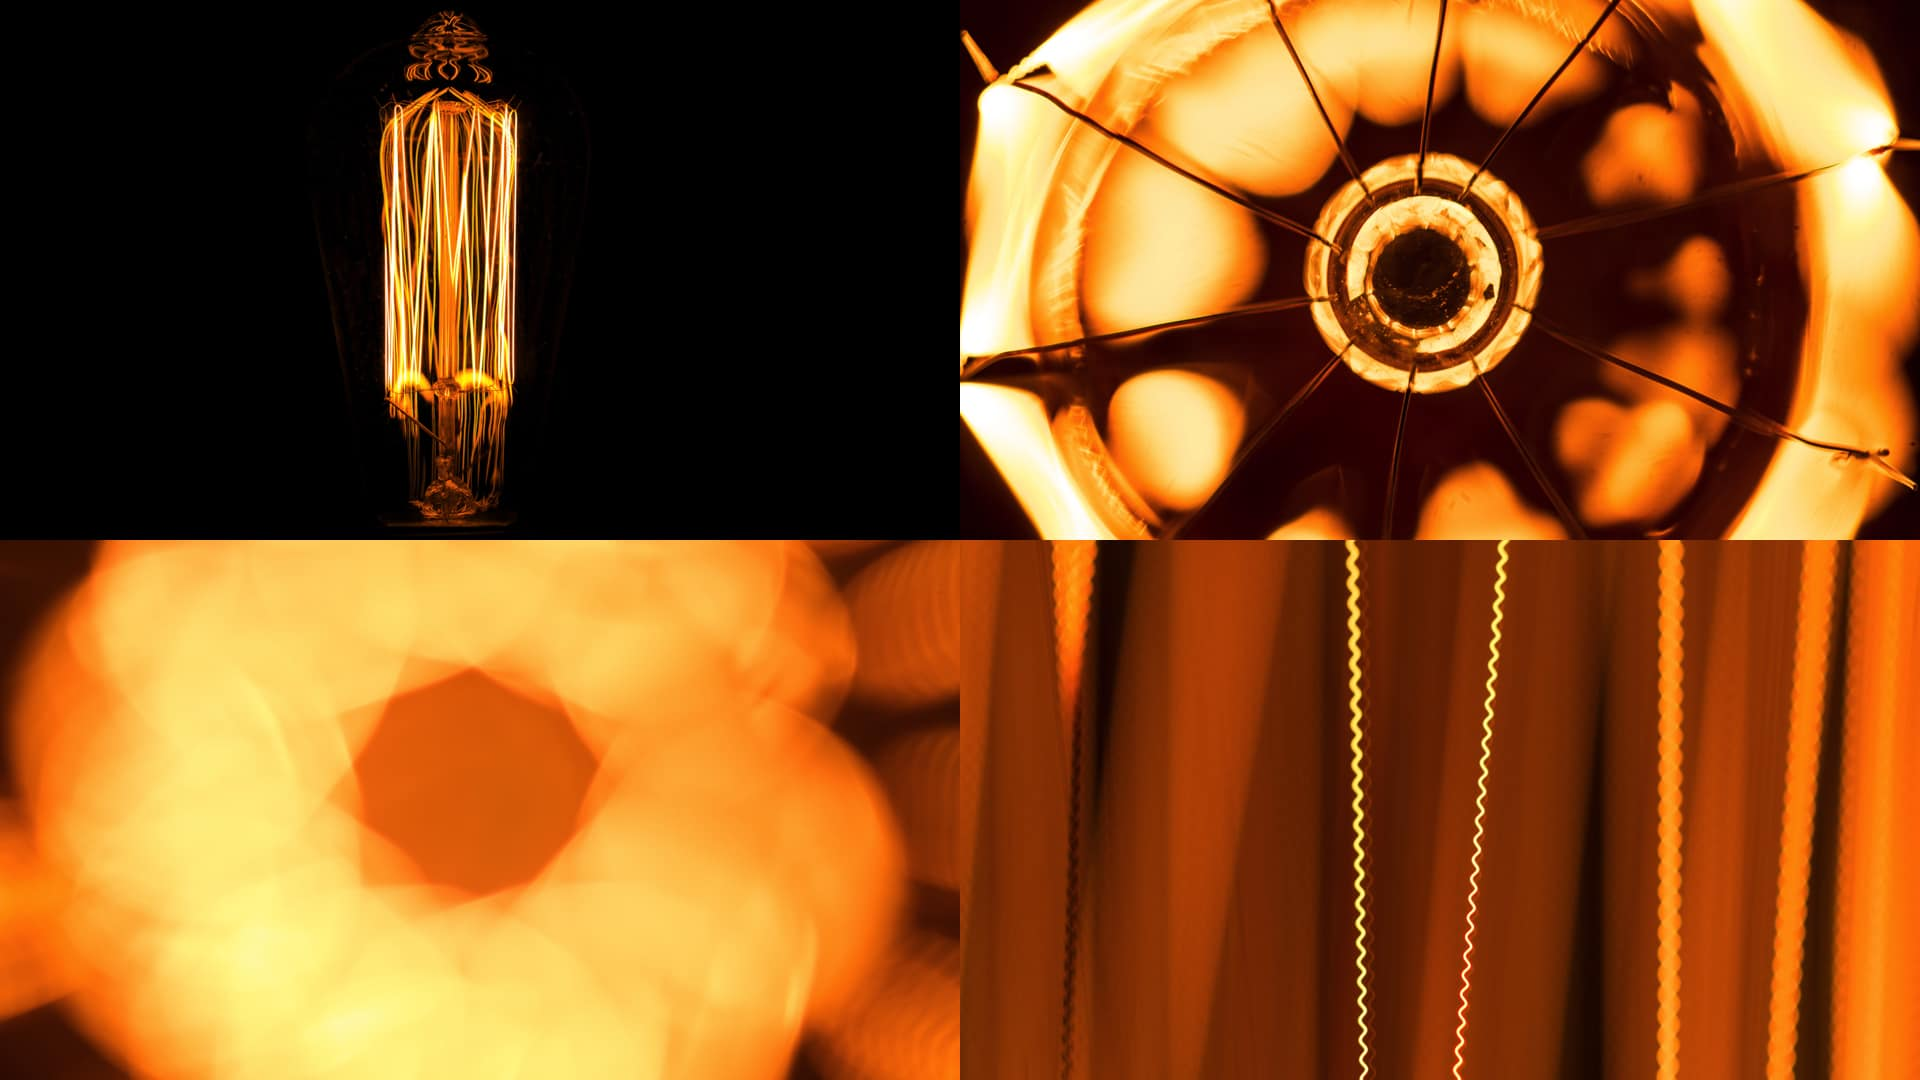 5 Free Tension Lightbulb Stills